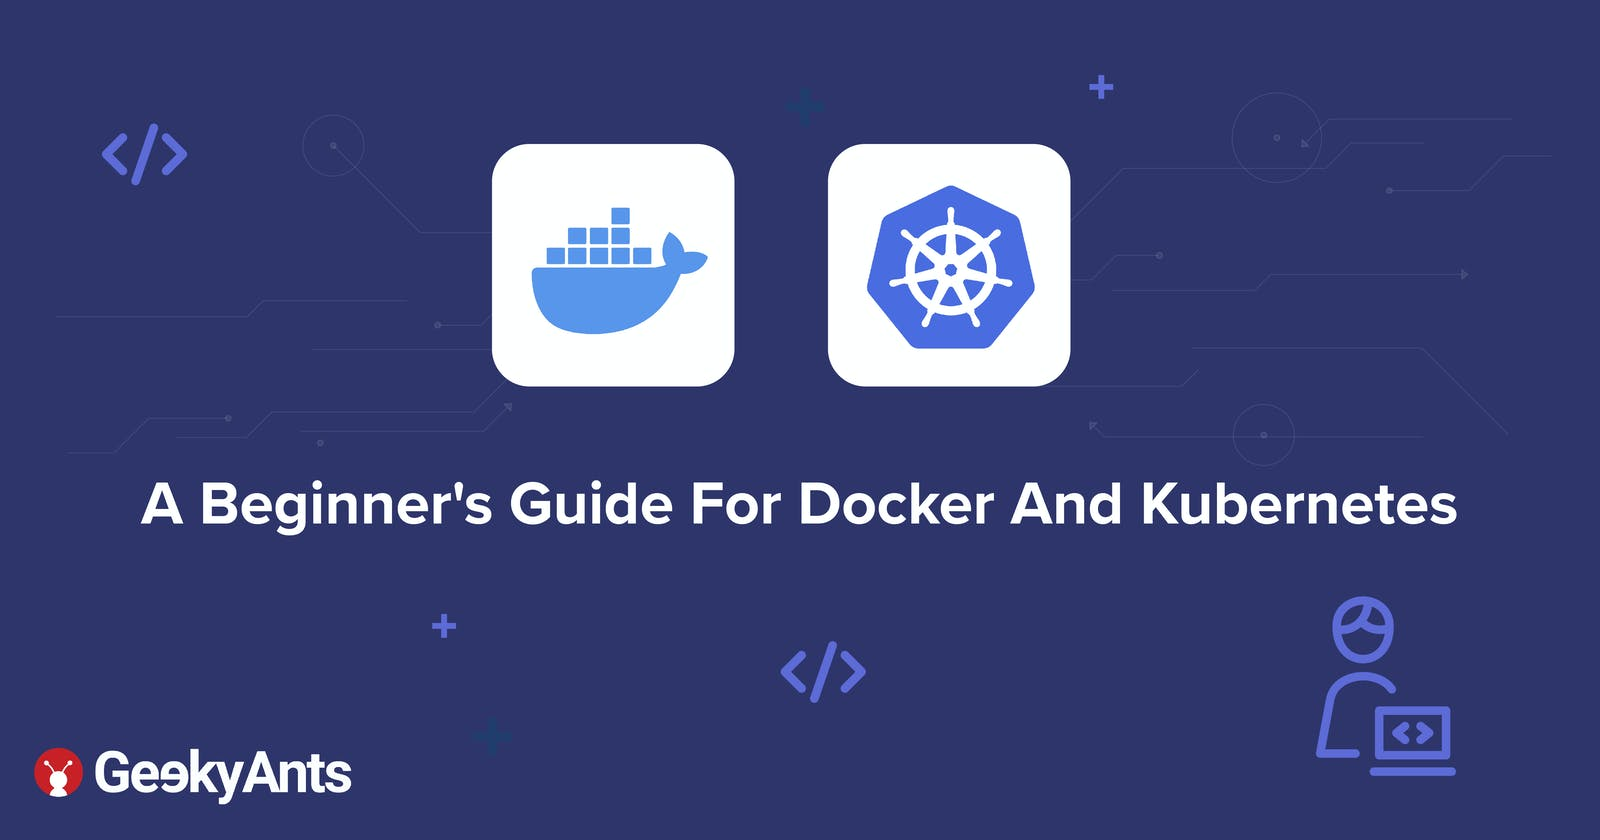 A Beginner's Guide For Docker And Kubernetes